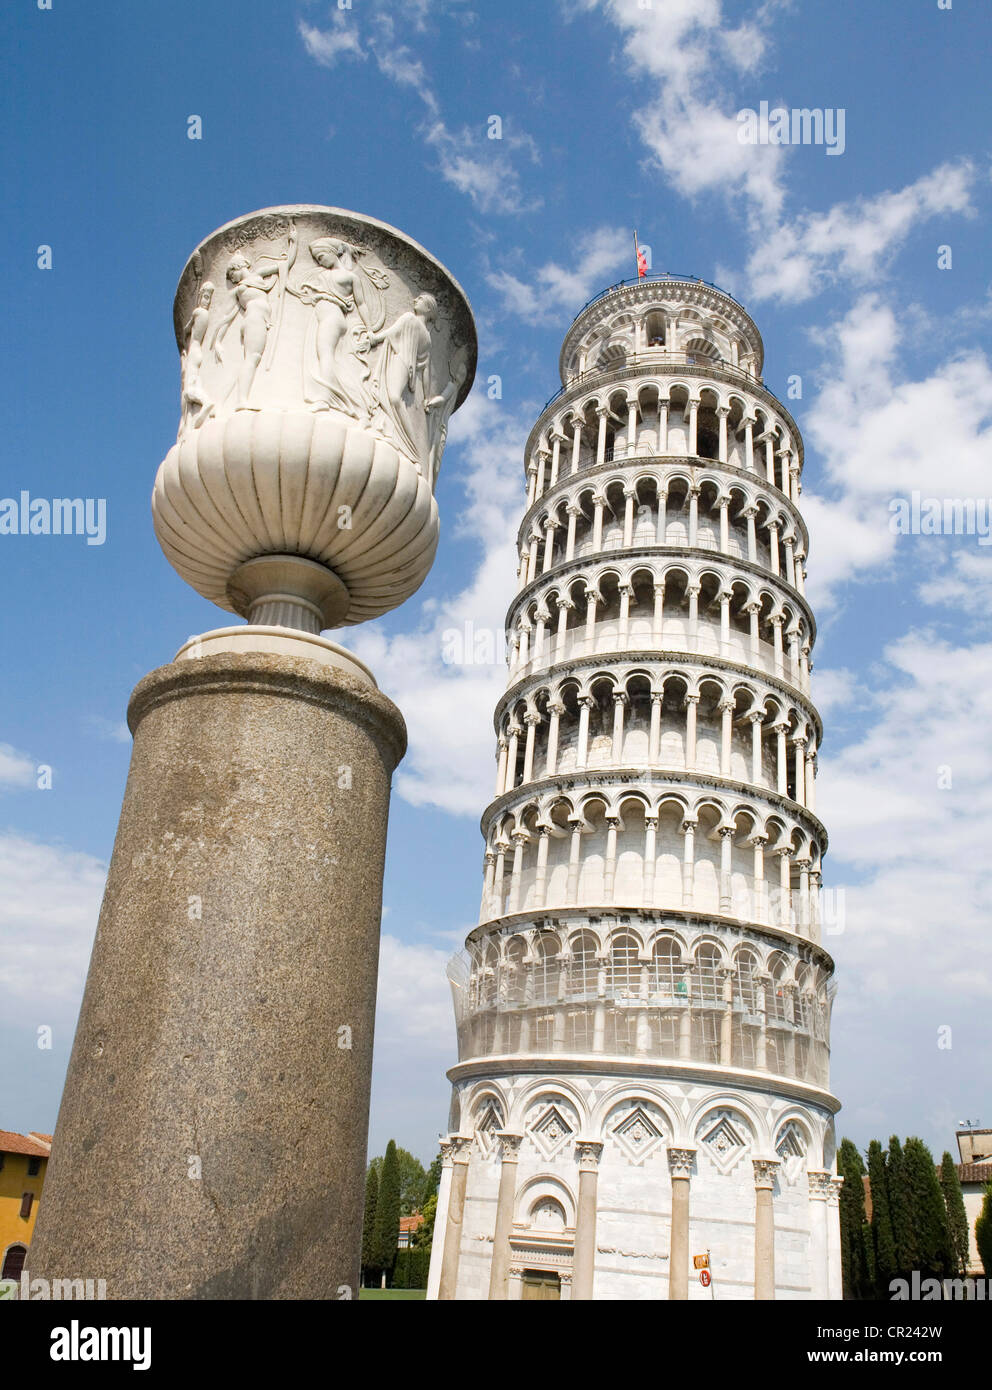 Statue with Tower of Pisa - Stock Image